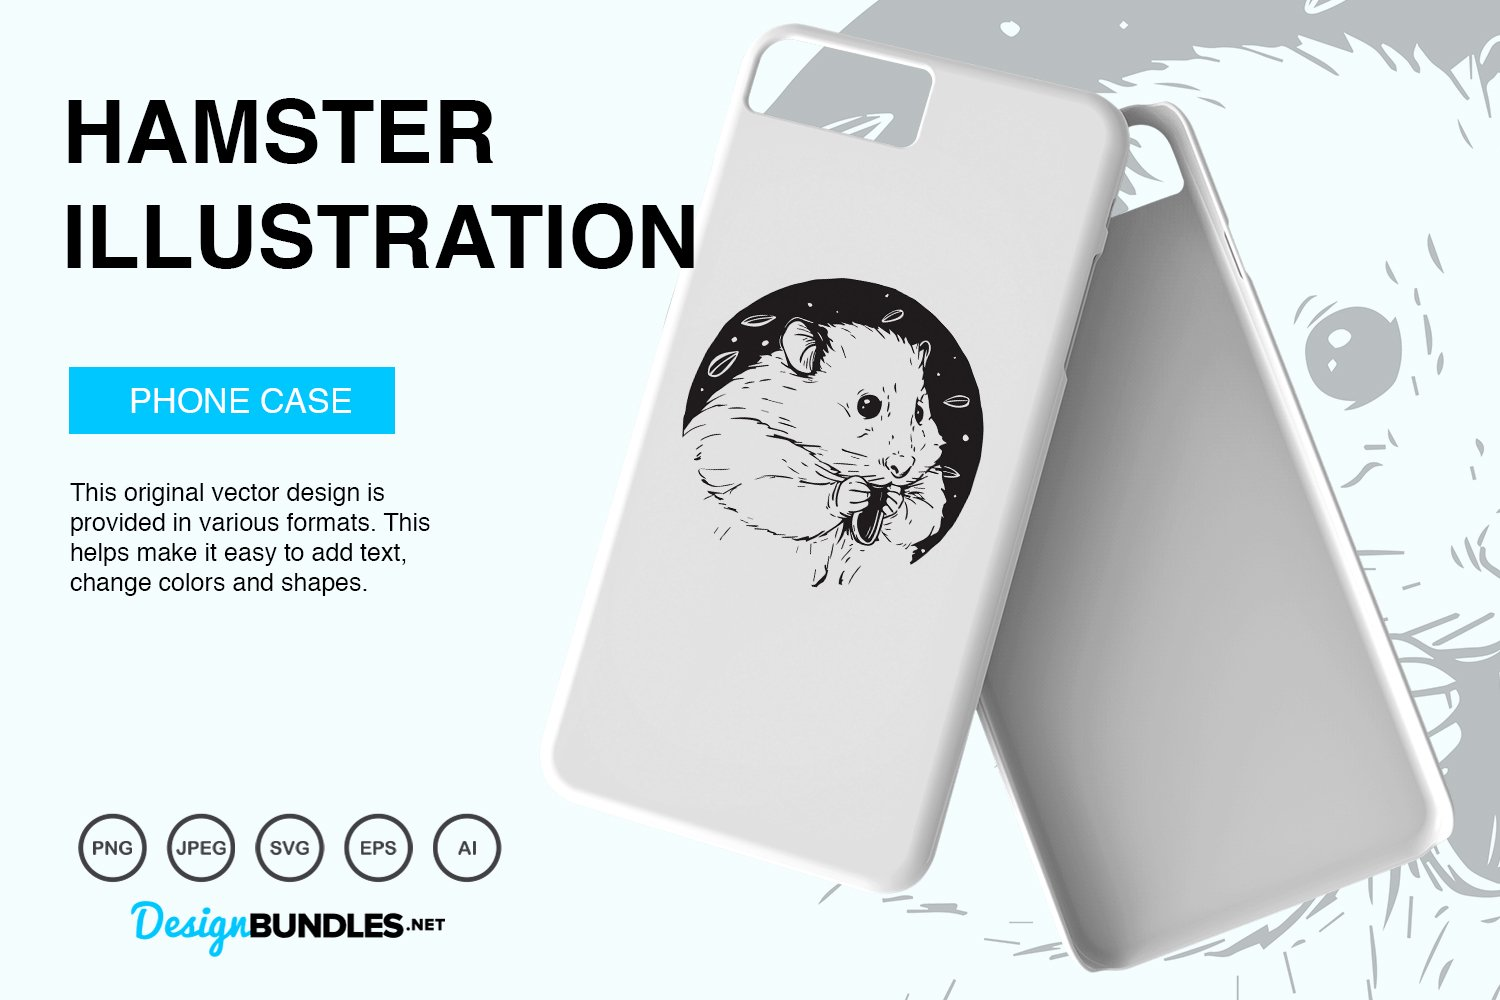 Hamster Vector Illustration example image 2